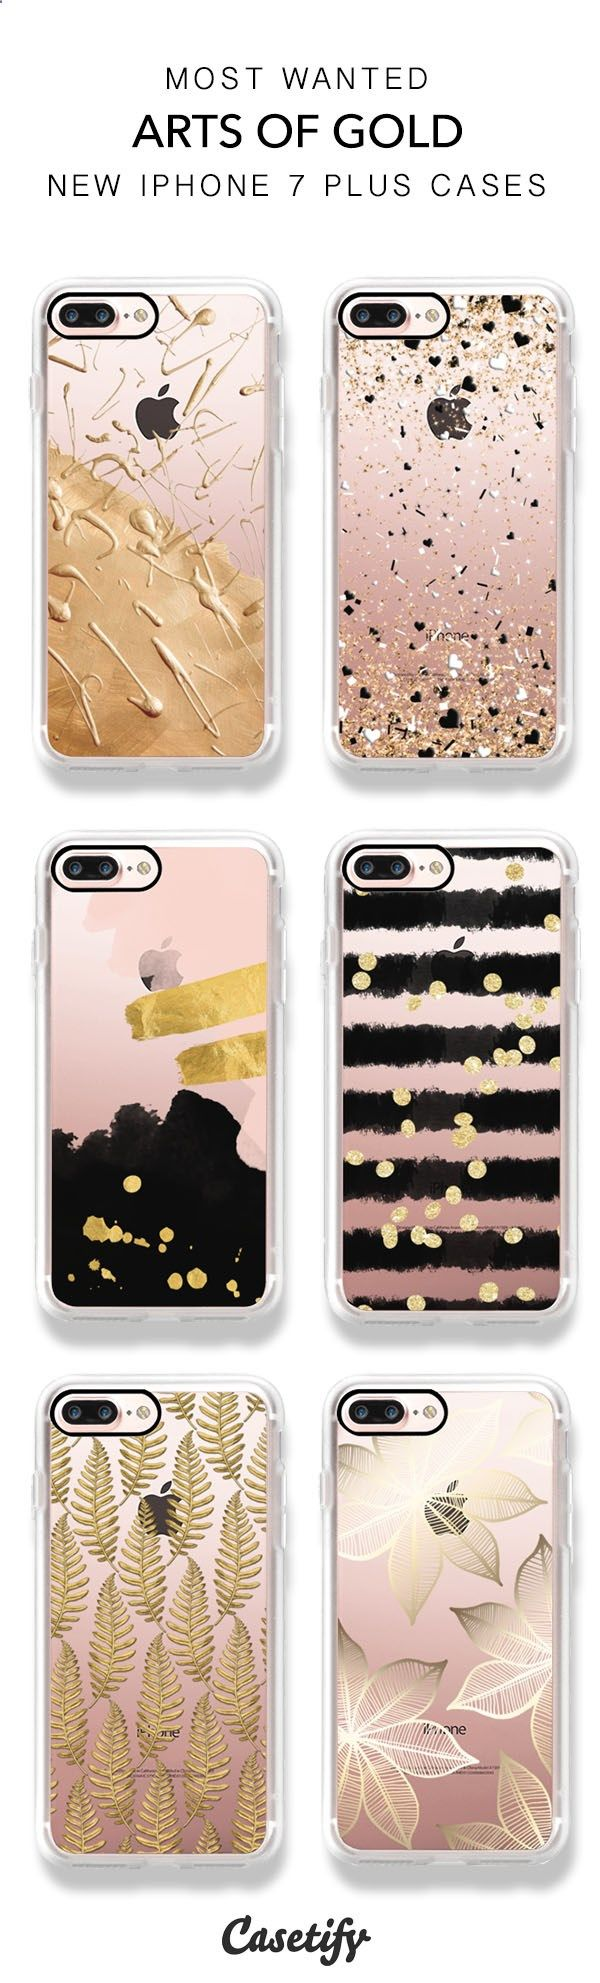 Phone Cases - Best selling Gold and Bold iPhone 7 and iPhone 7 Plus cases. Shop the Art of Gold Collection here > www.casetify.com/...